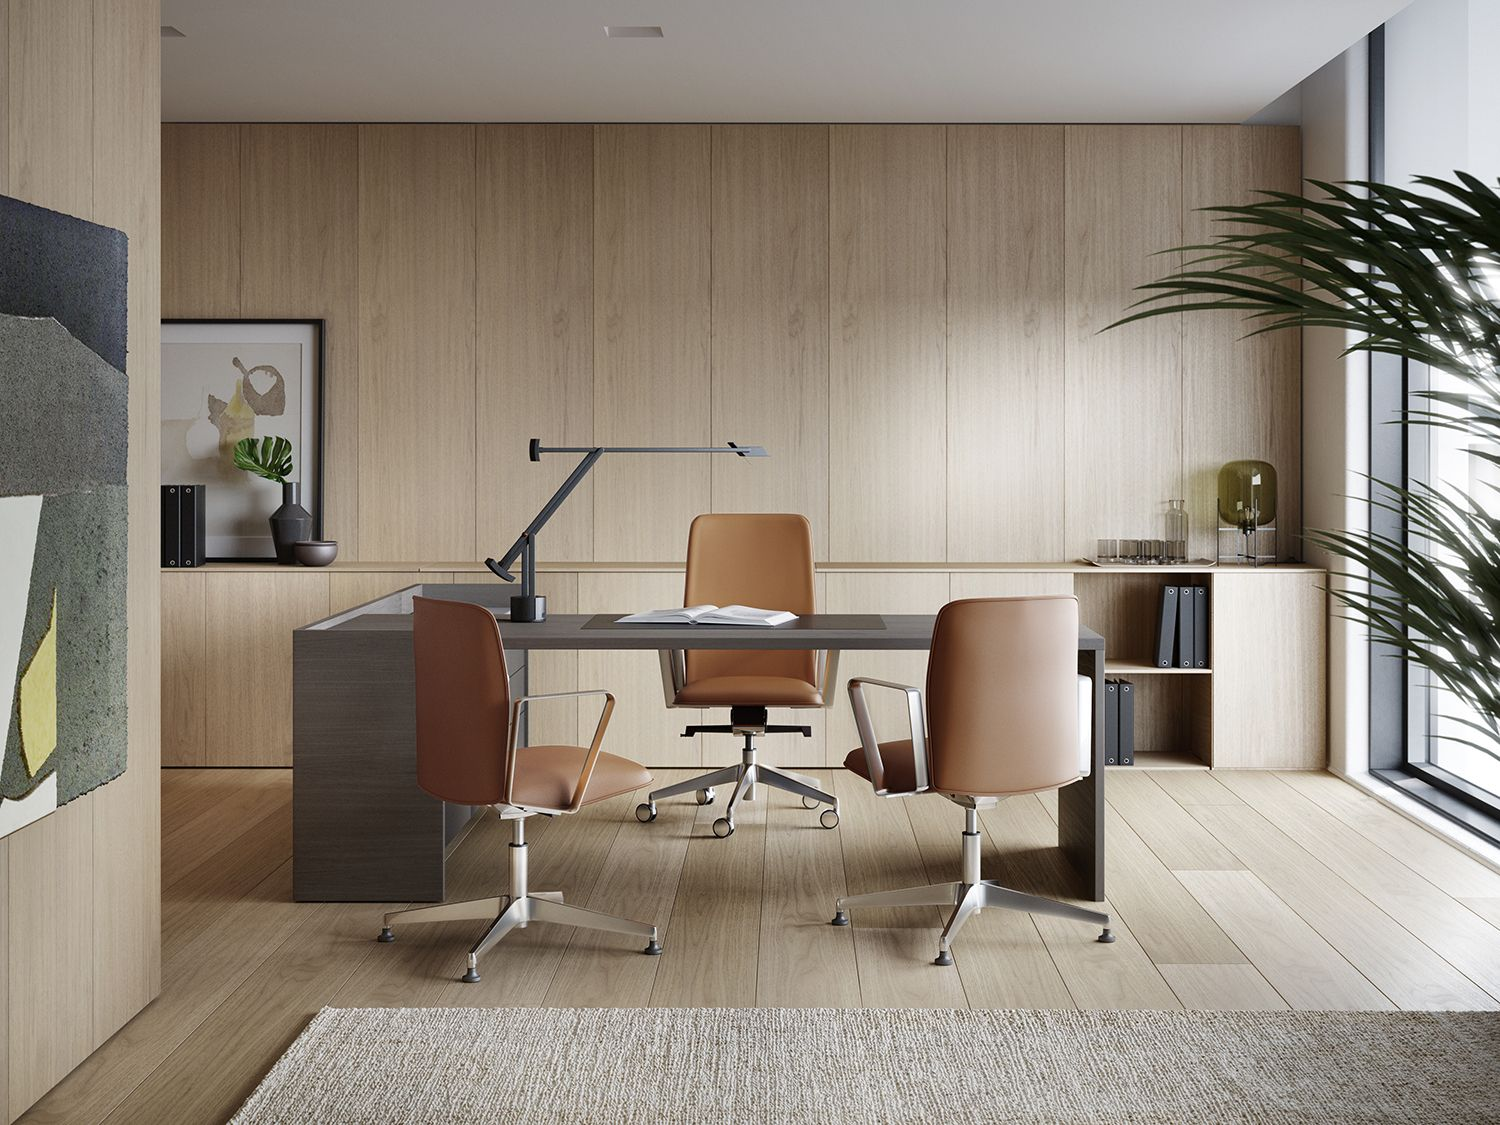 The Allure Chair Offers Aesthetic And Ergonomic Benefits